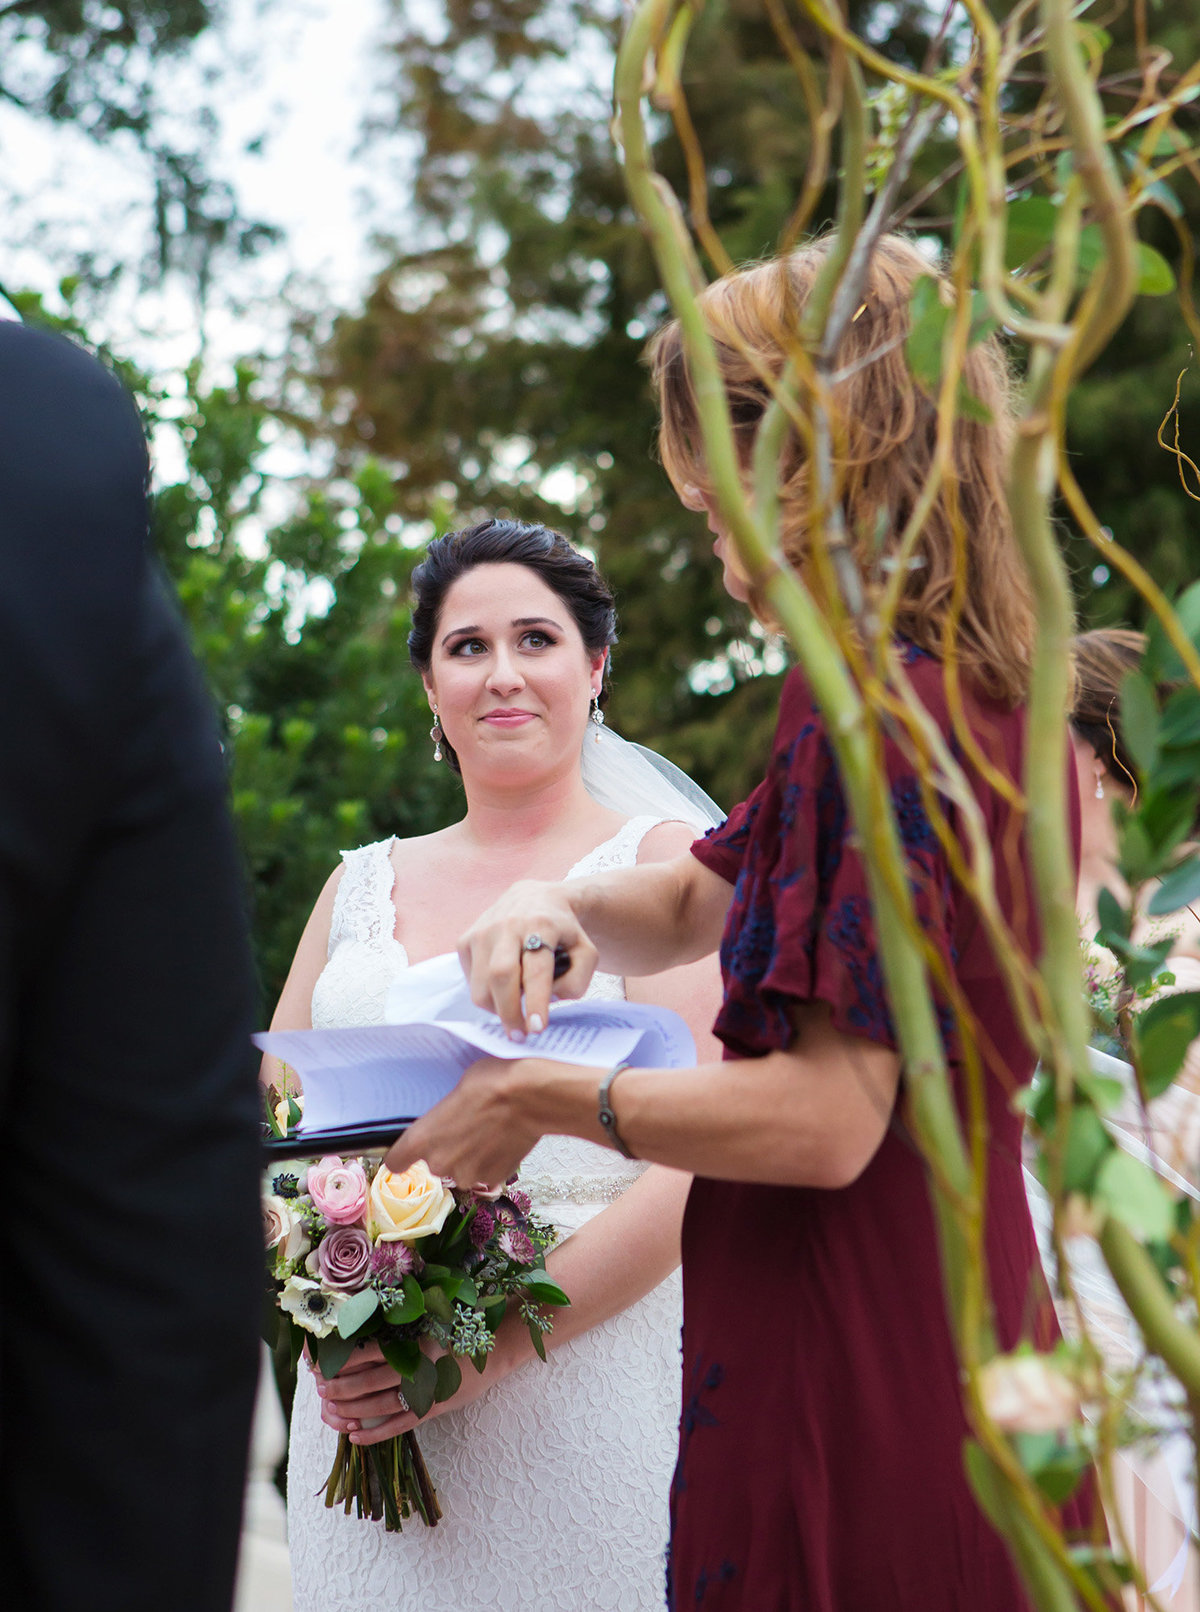 new orleans bride looking at officiant during wedding ceremony in Audubon Park